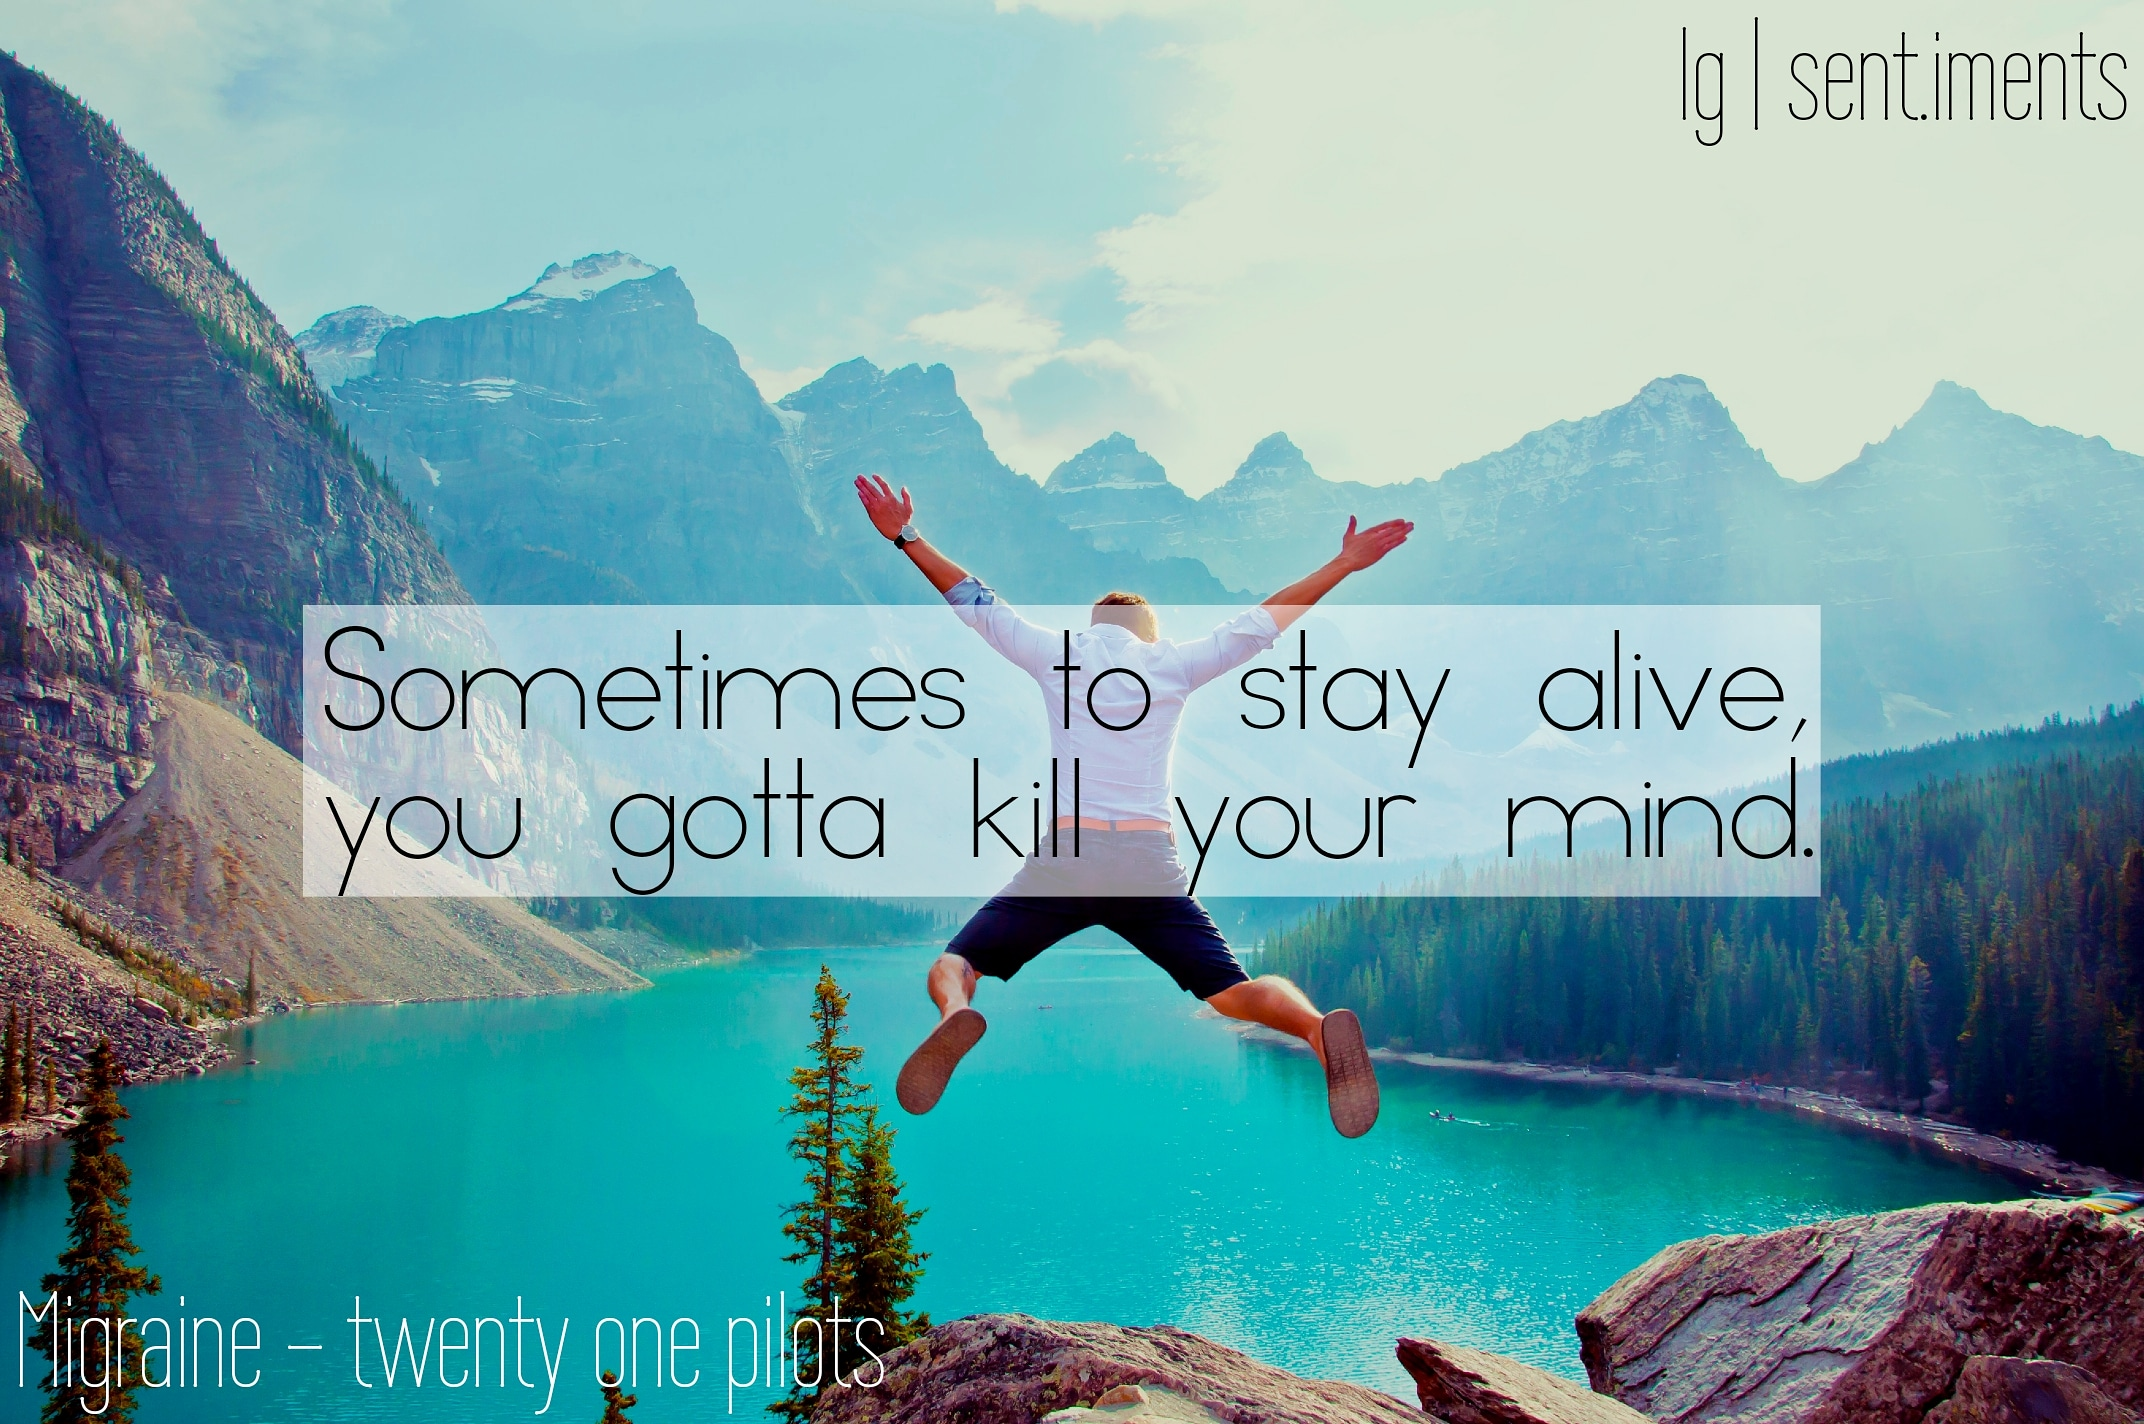 Sometimes to stay alive, you gotta kill your mind by twenty one pilots (2144X1424)